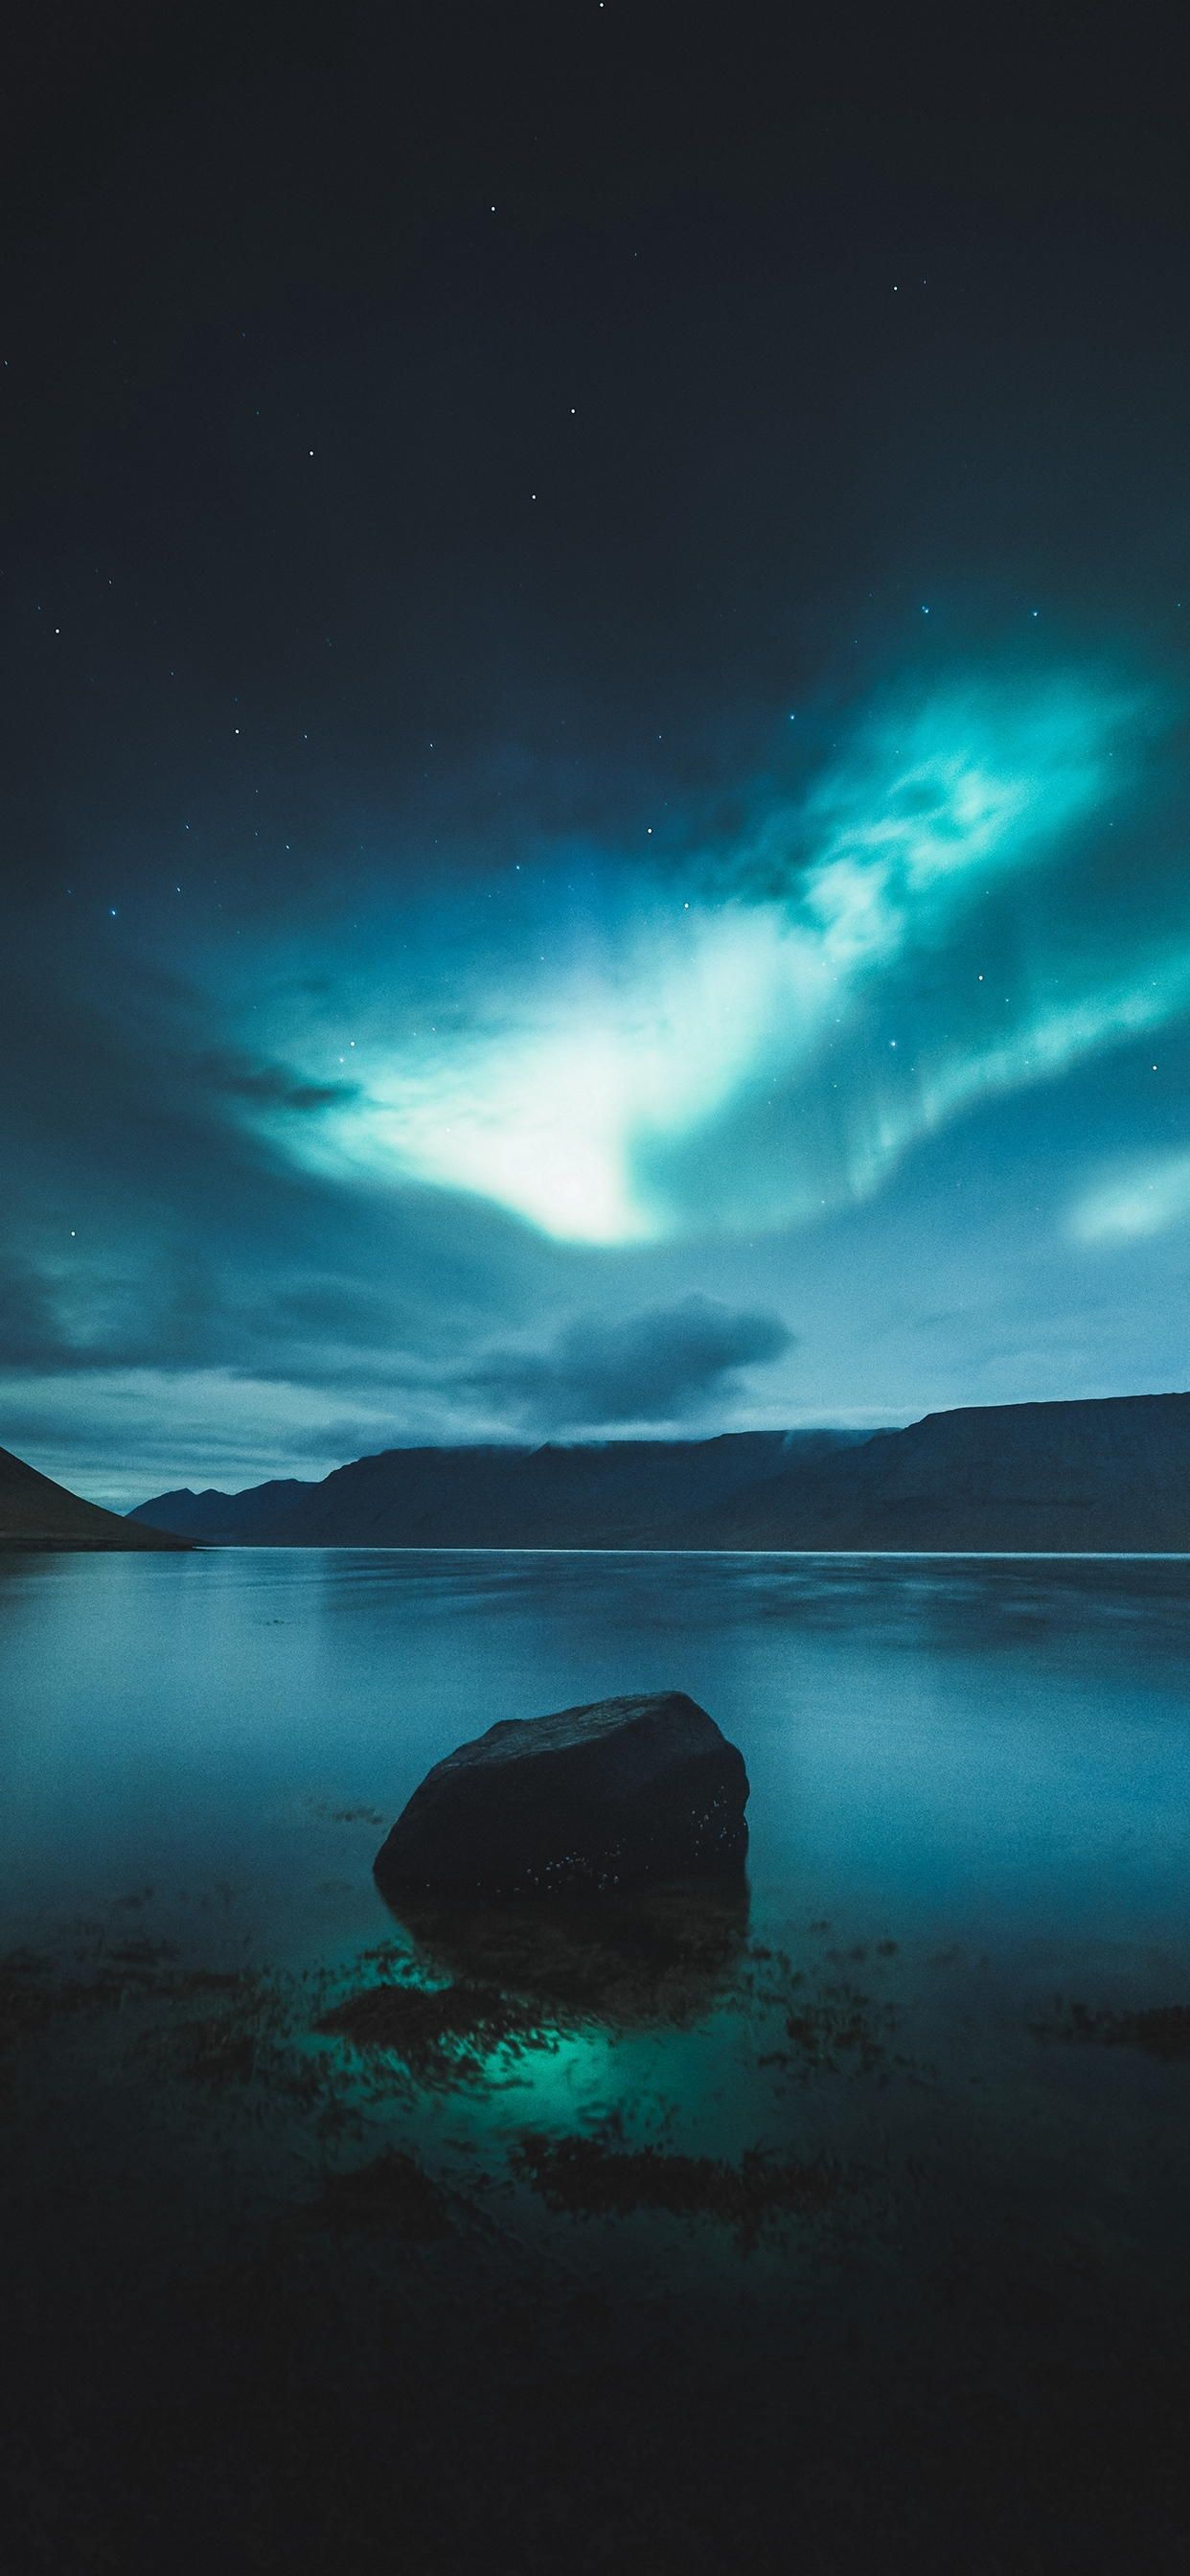 Iphone 11 Pro Max Hd Wallpapers Night Sky Wallpaper Northern Lights Wallpaper Iphone Night Skies